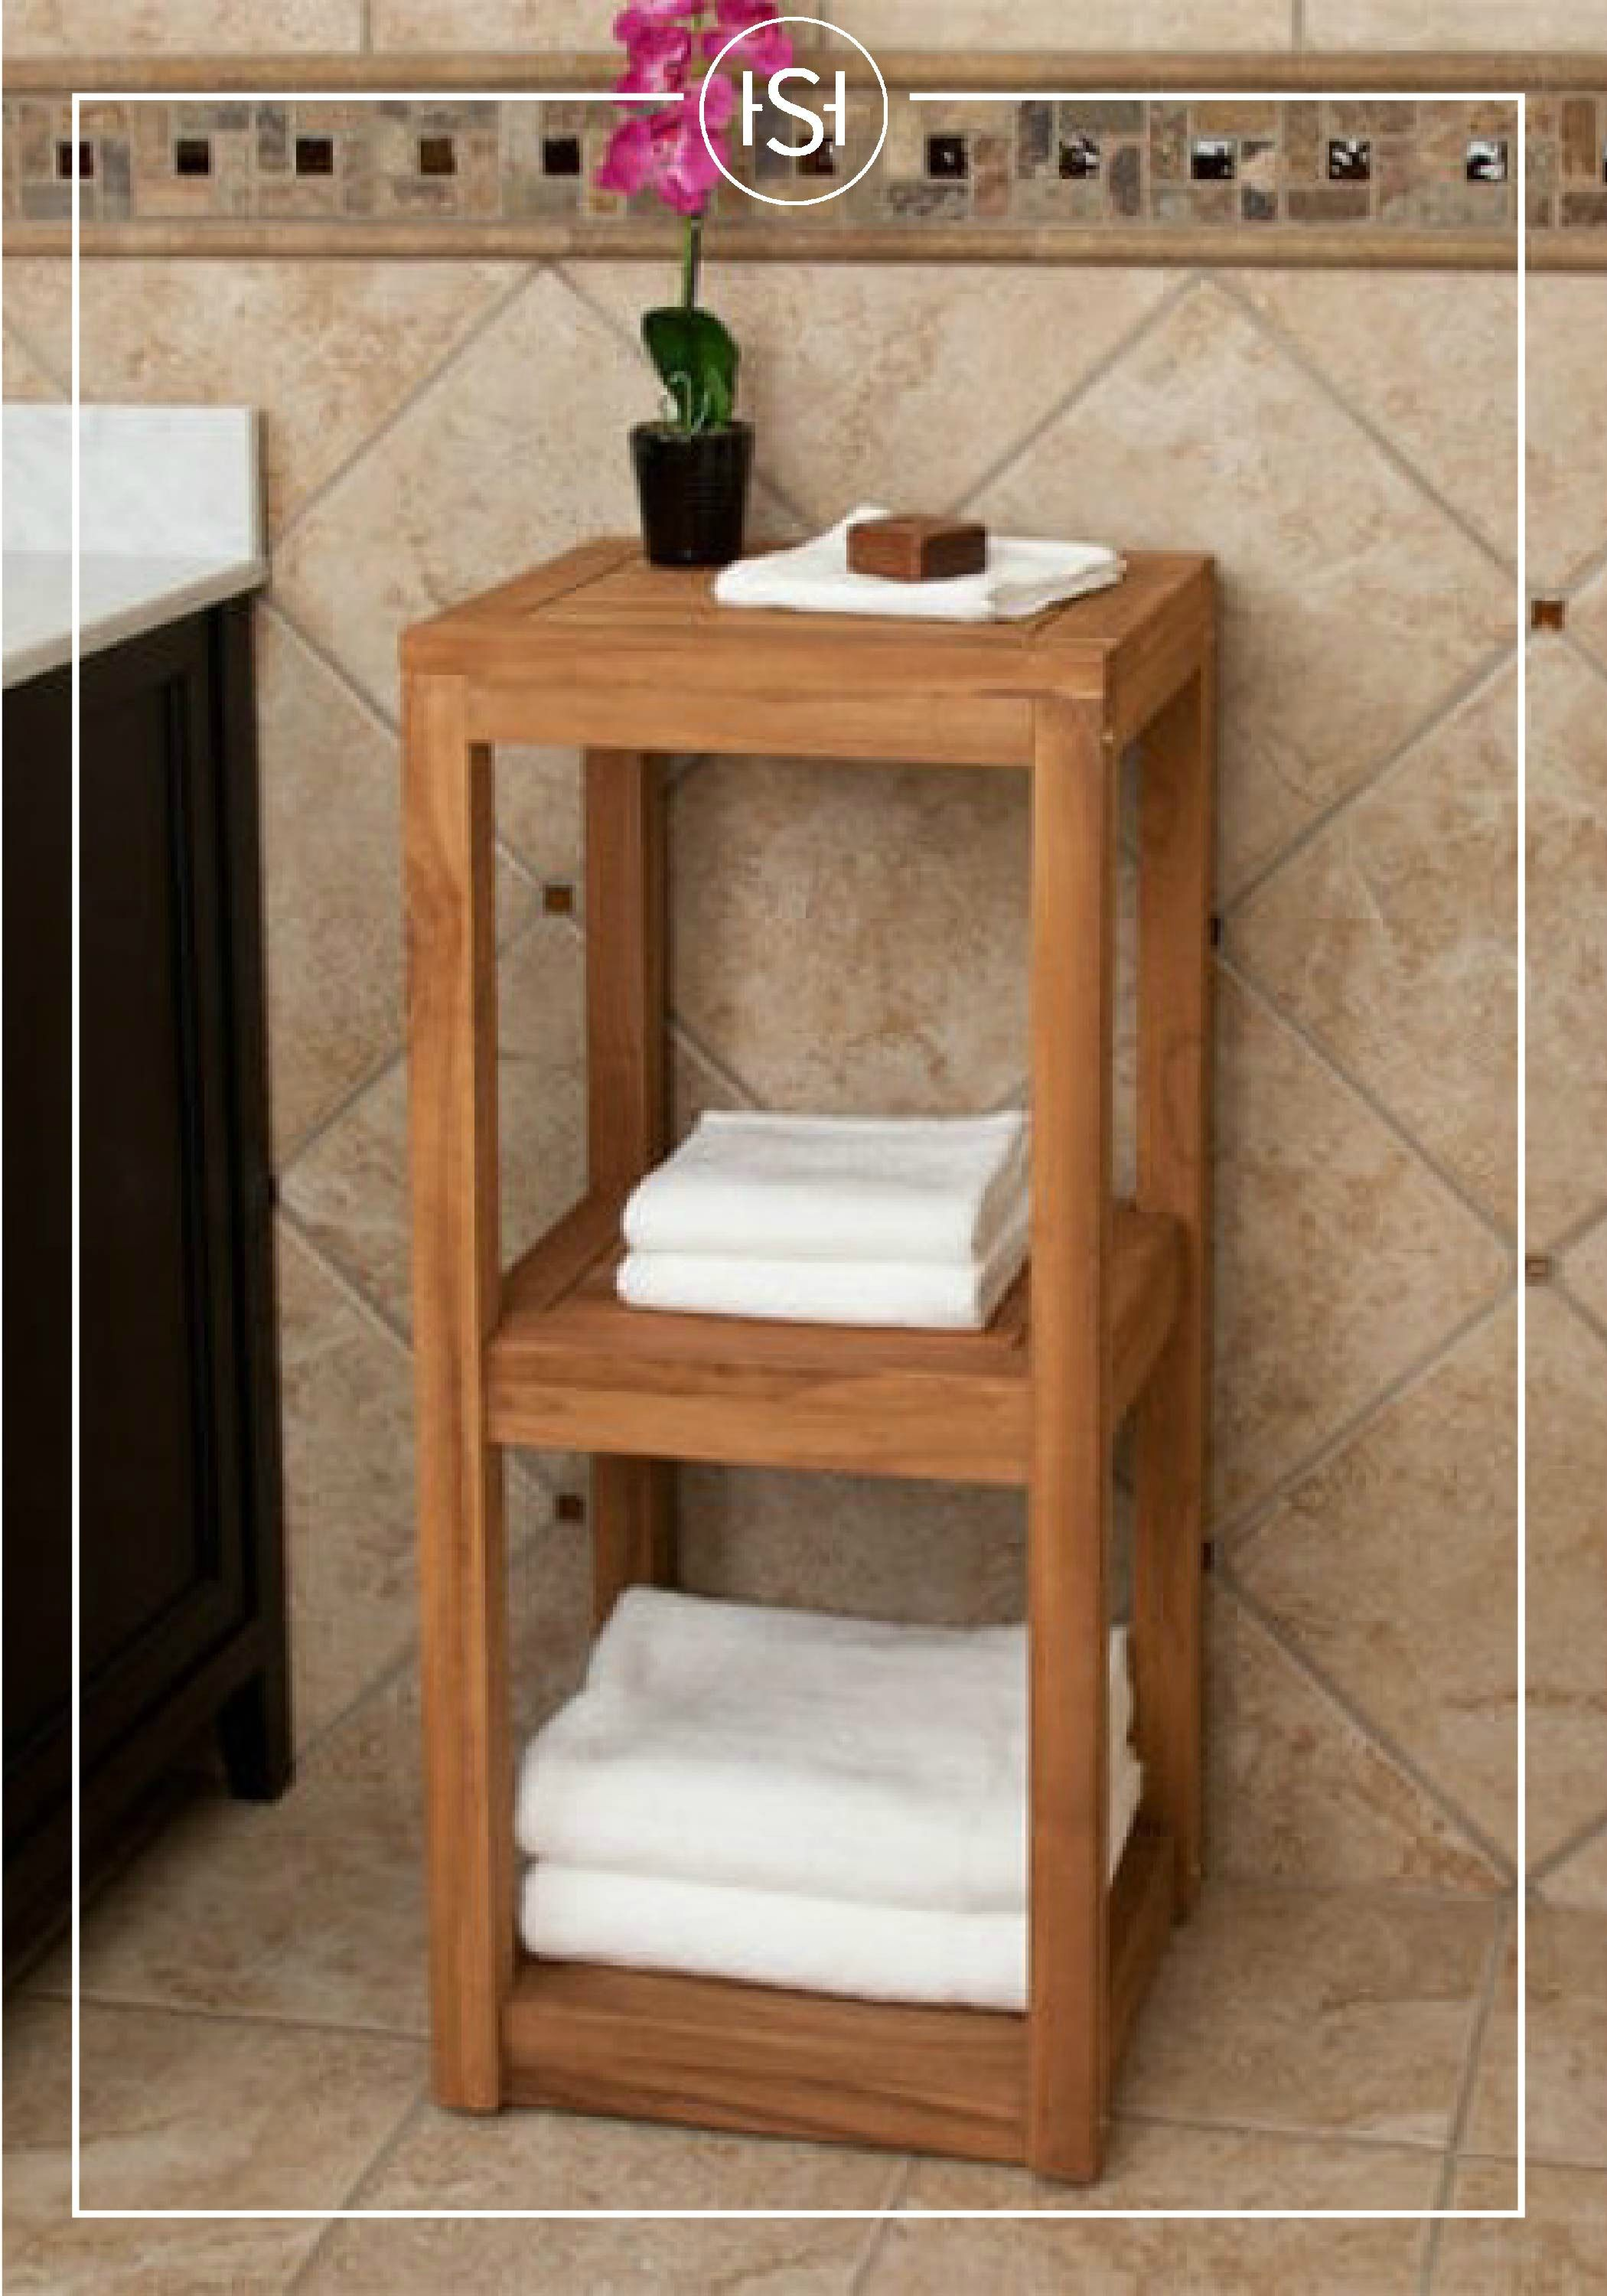 Three Tier Teak Towel Shelf | Signature Hardware Favorites ...